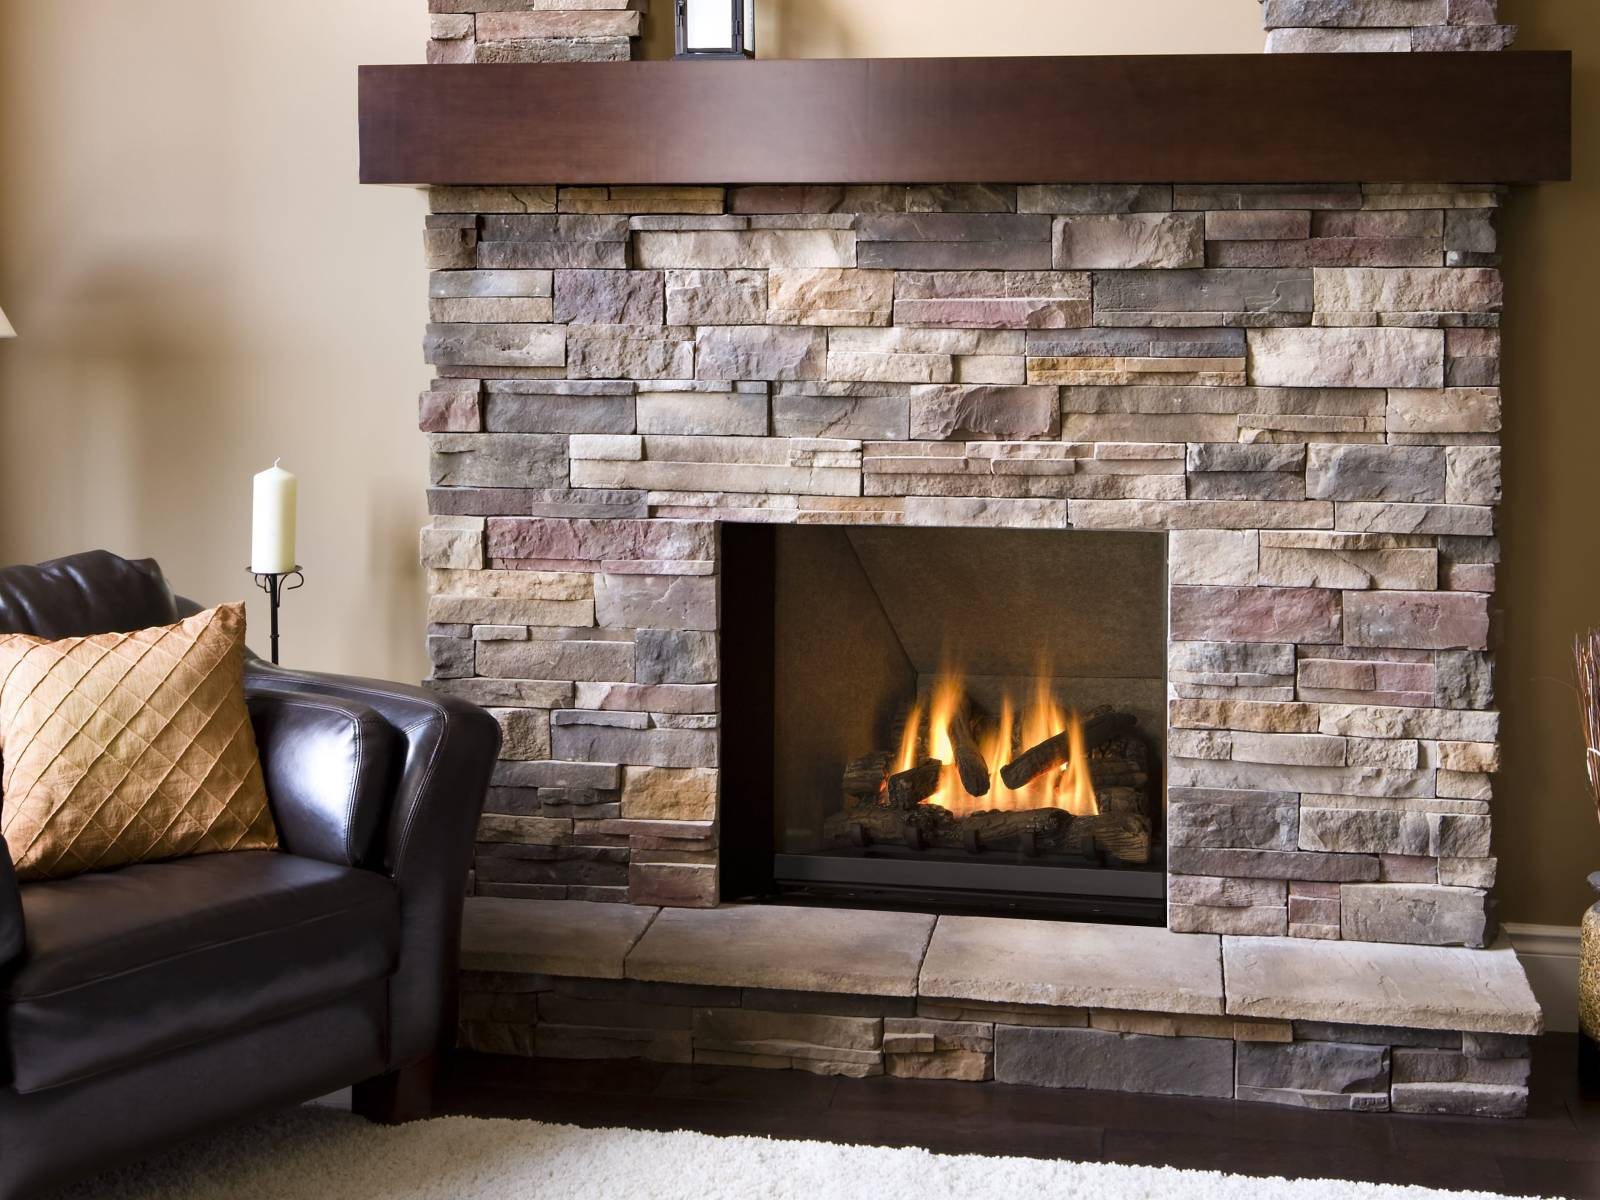 10 Flawless Ideas Of Stone Veneer Fireplace To Decorate Your Living Room